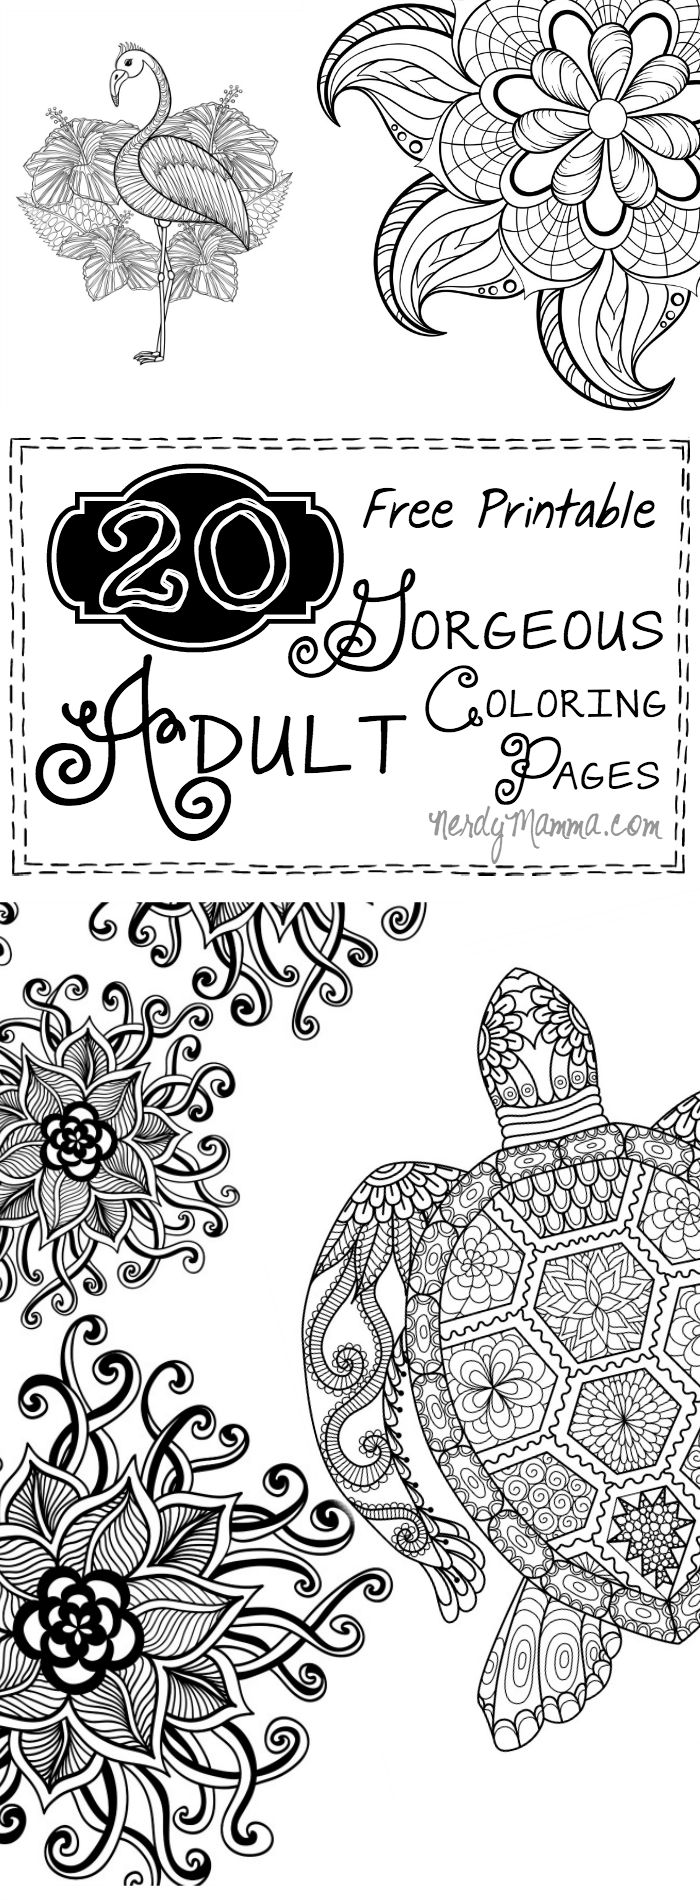 Free printable coloring pages that say i love you - 20 Gorgeous Free Printable Adult Coloring Pages